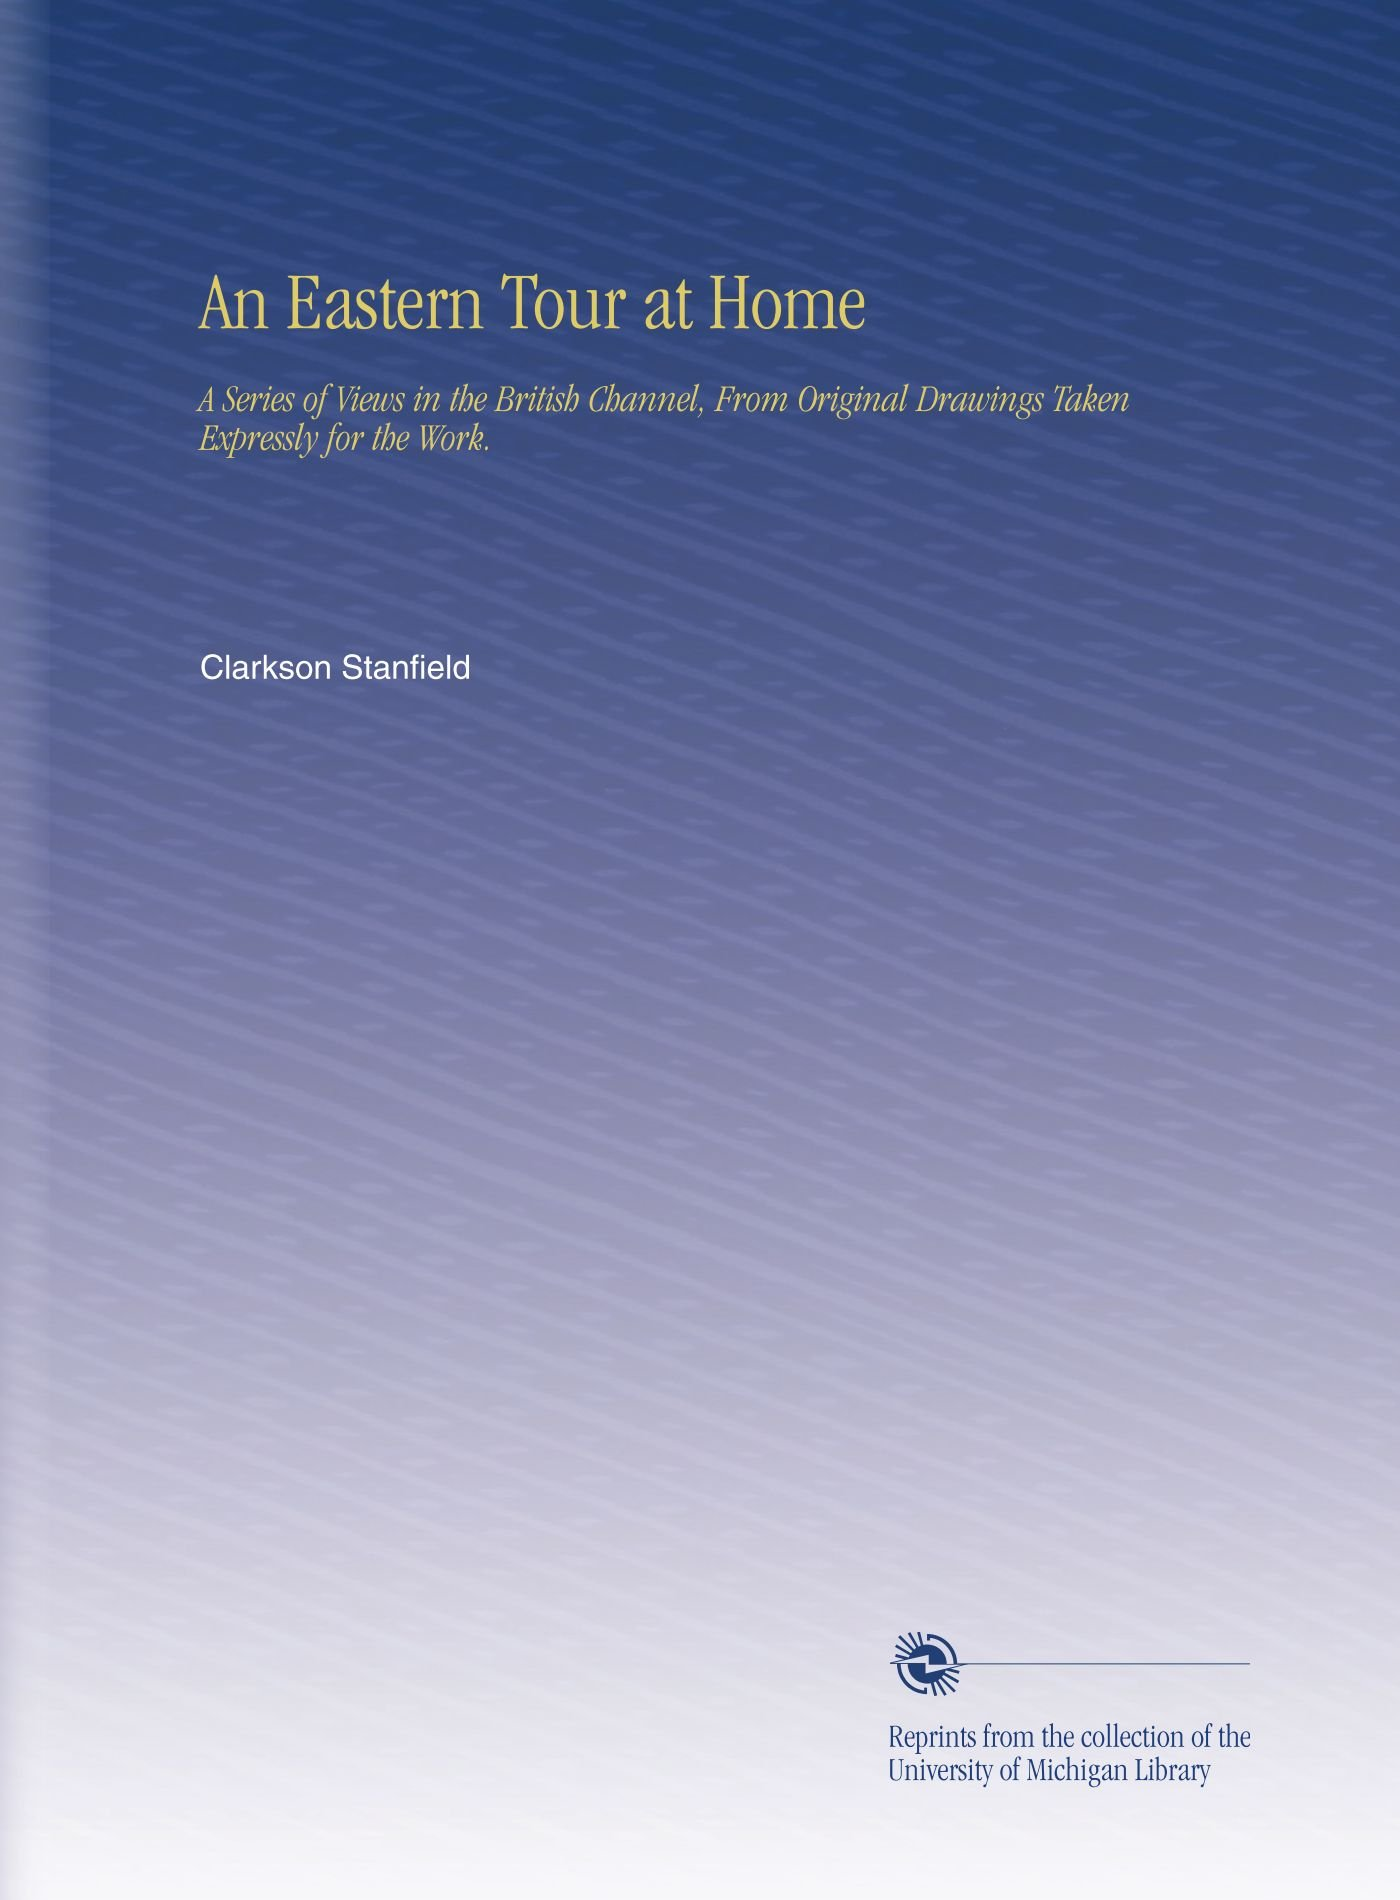 An Eastern Tour at Home: A Series of Views in the British Channel, From Original Drawings Taken Expressly for the Work. PDF